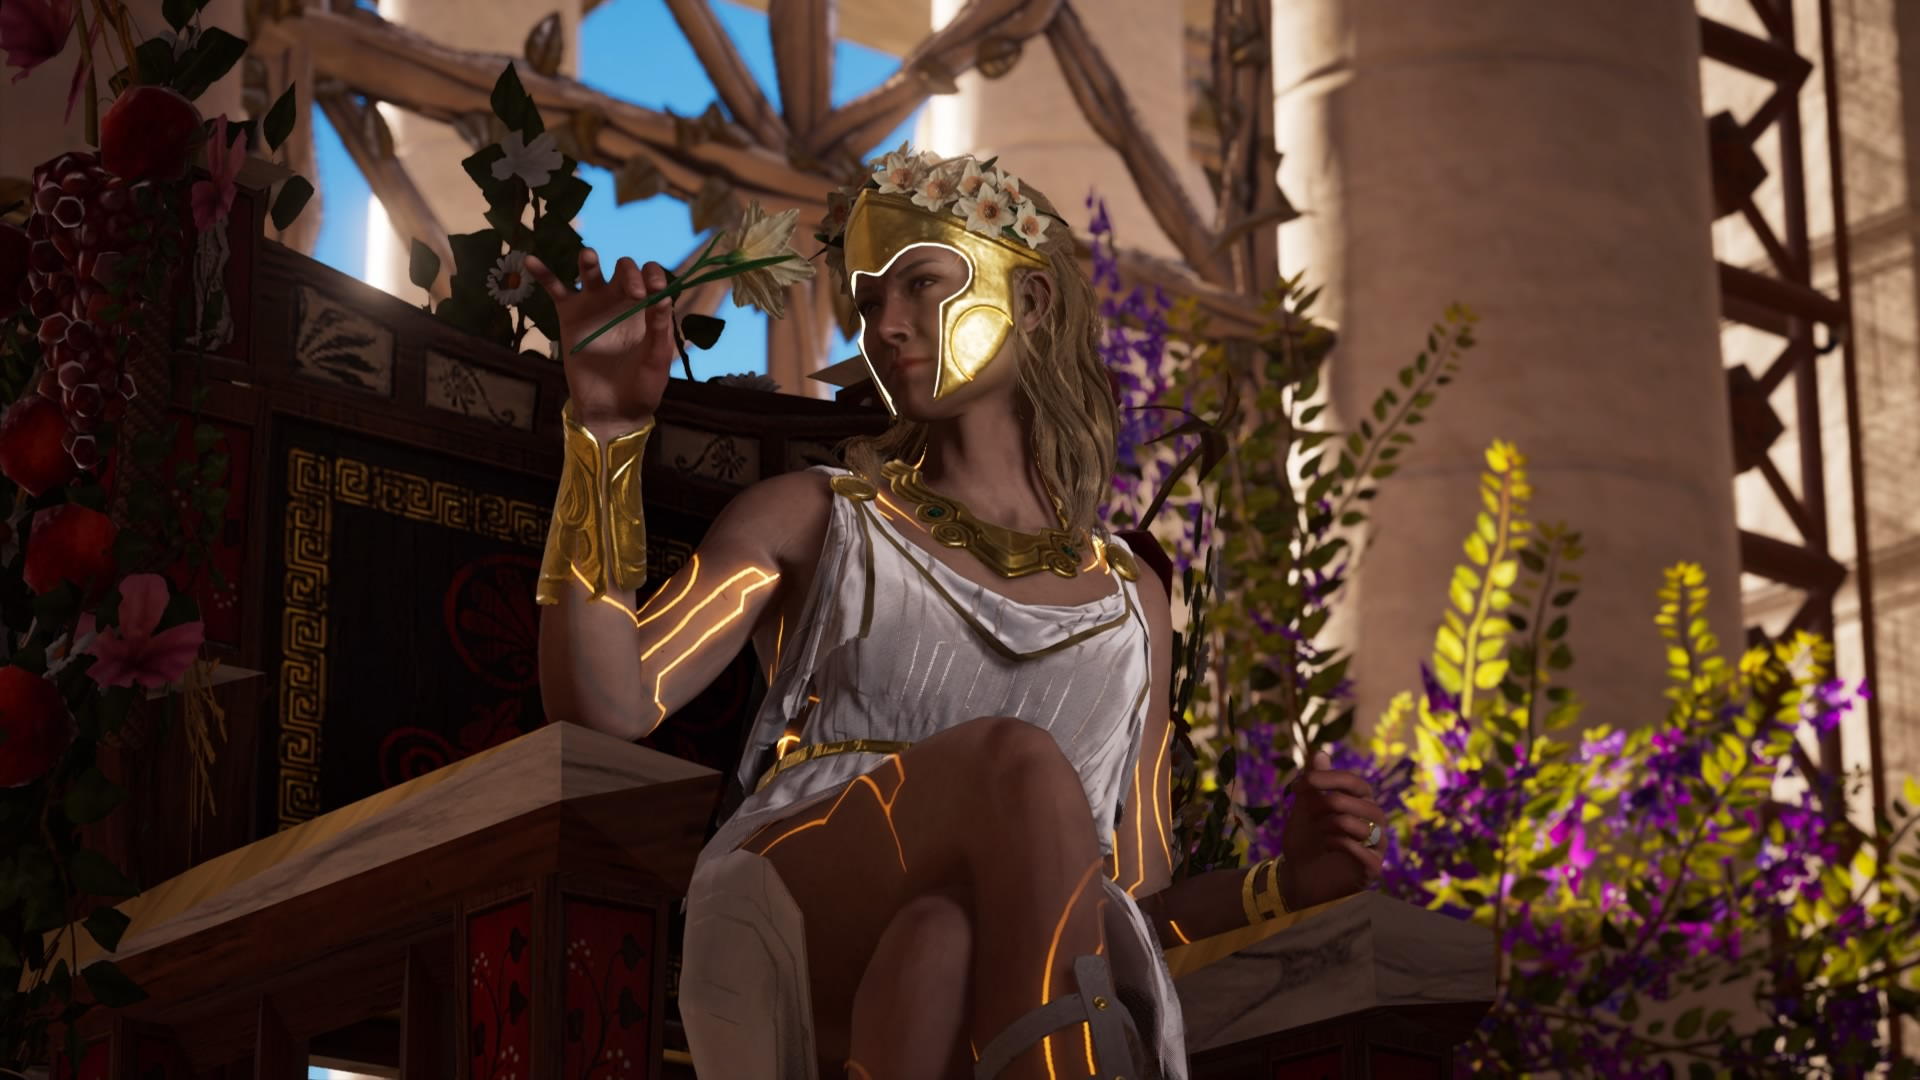 Assassin's Creed Odyssey: Fate of Atlantis ending and